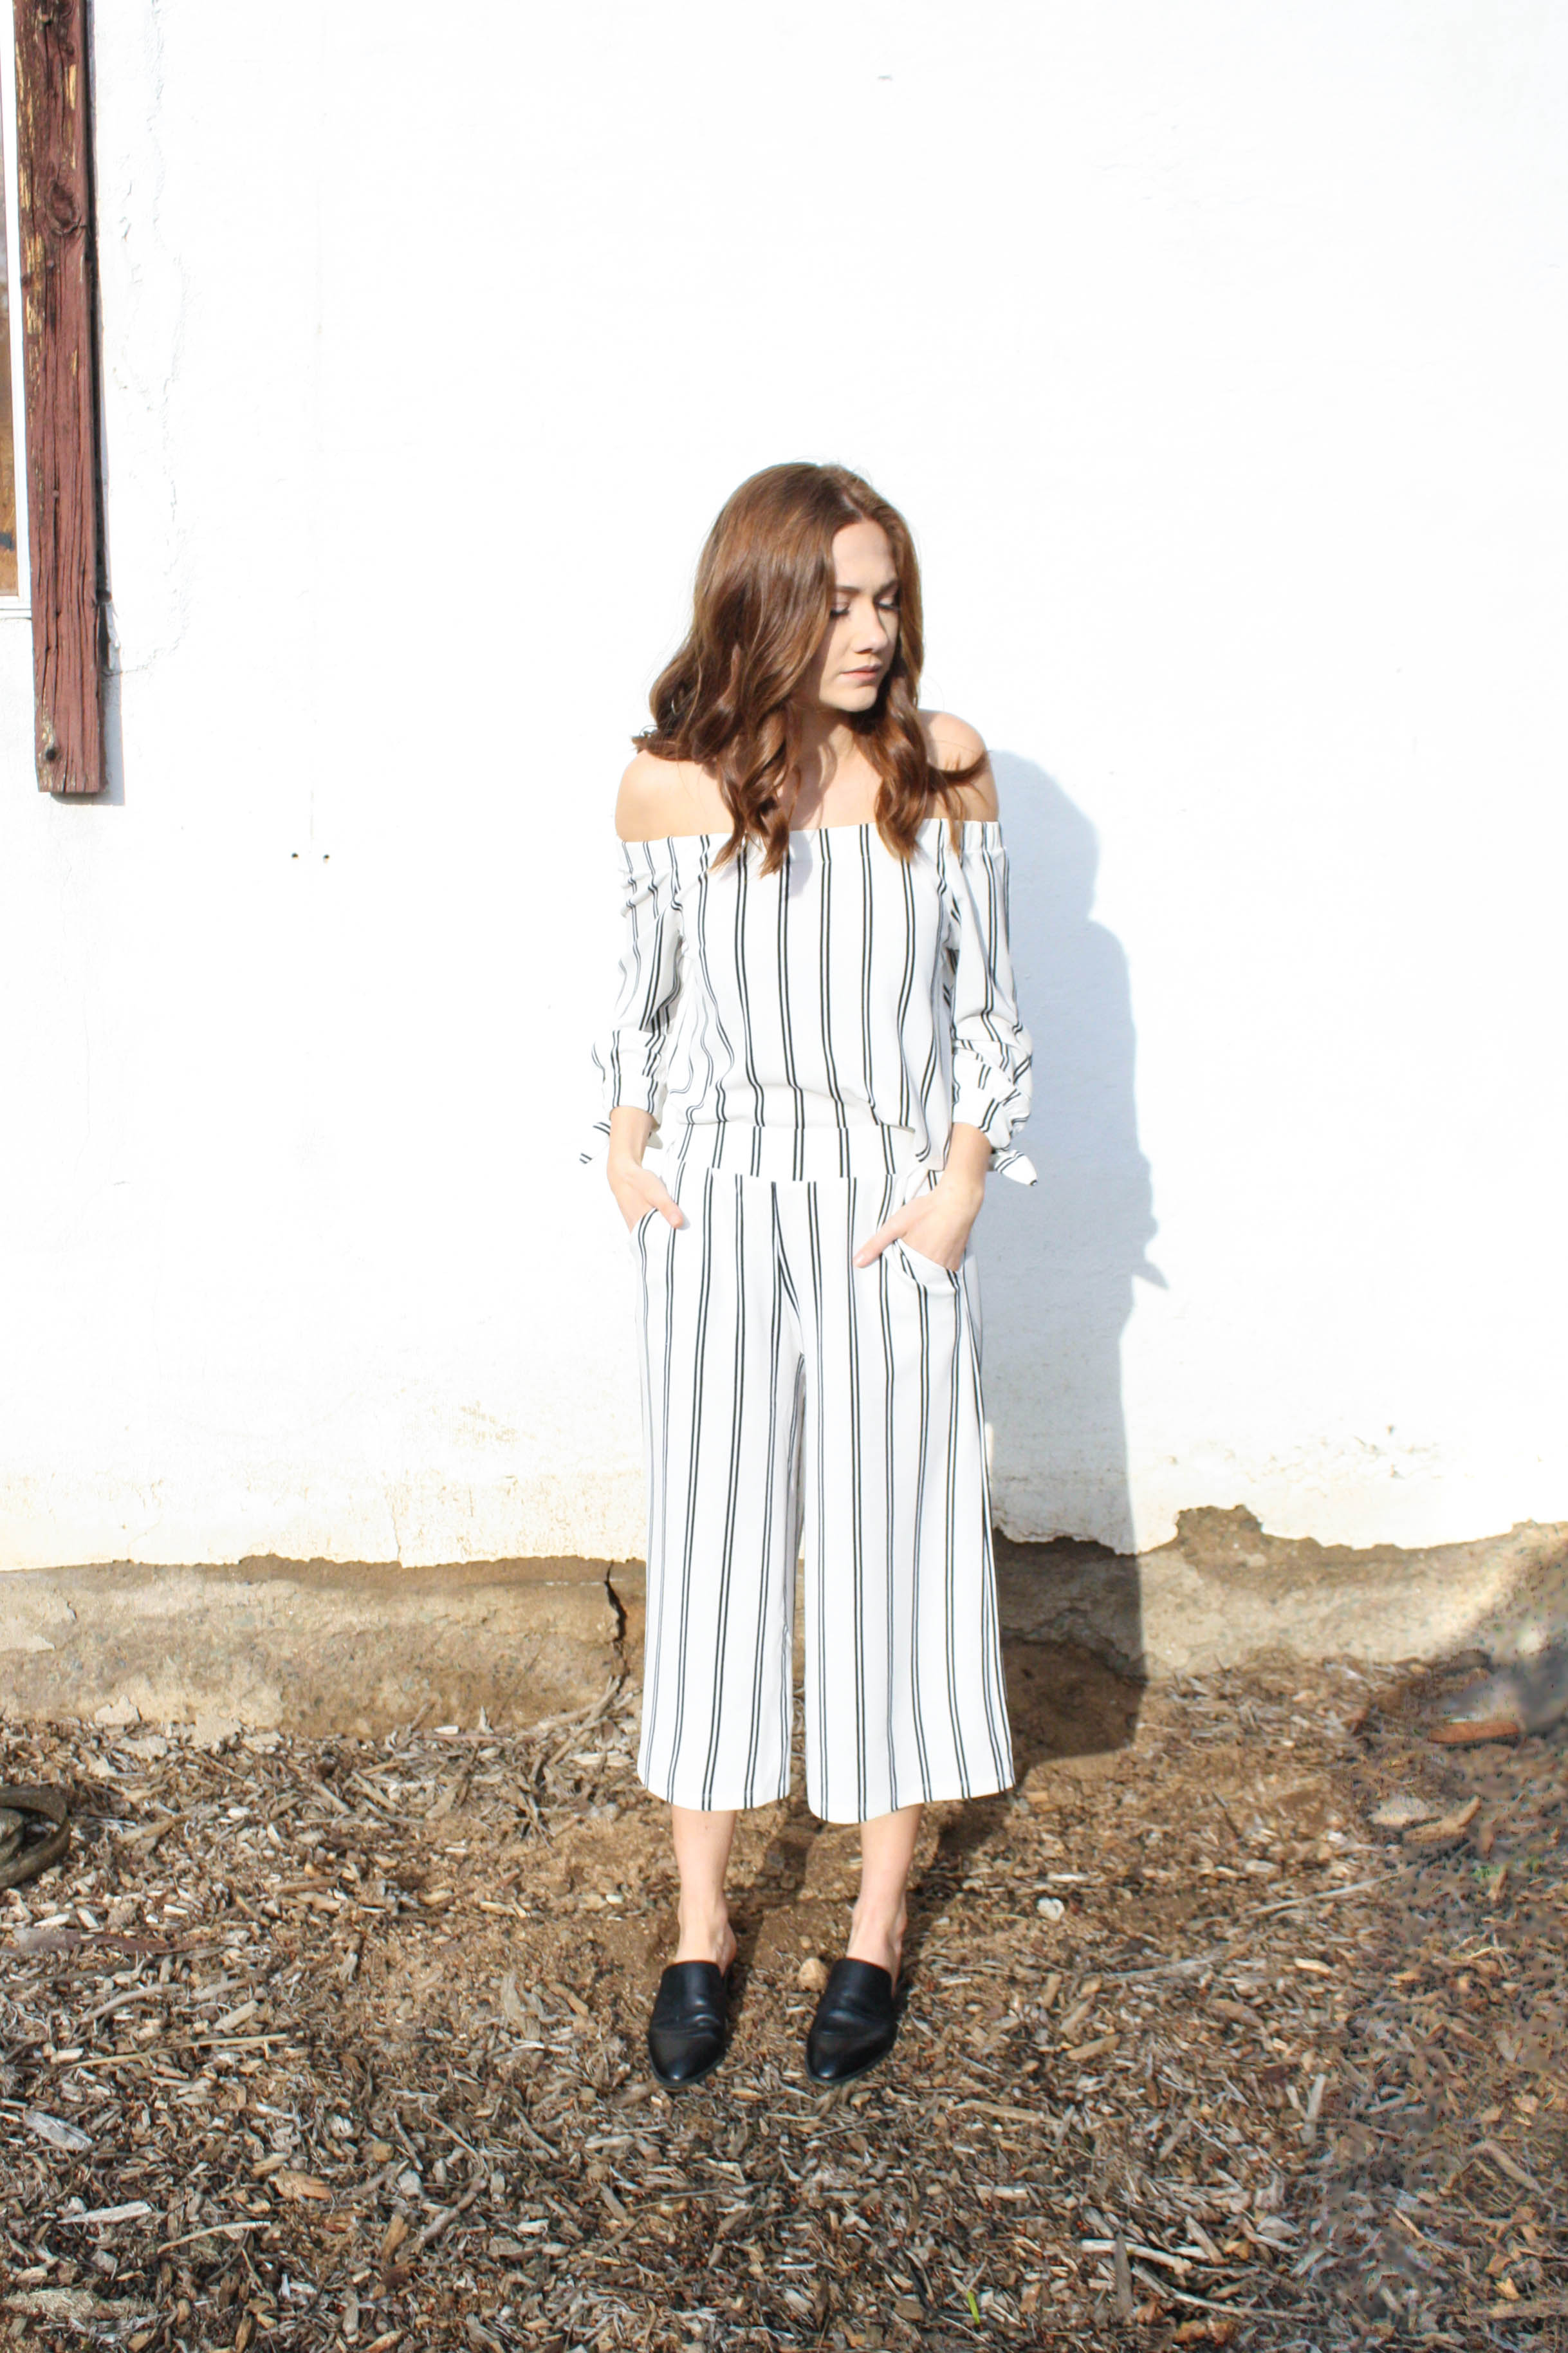 http://www.shopstyle.com/collective/butwhatshouldiwear